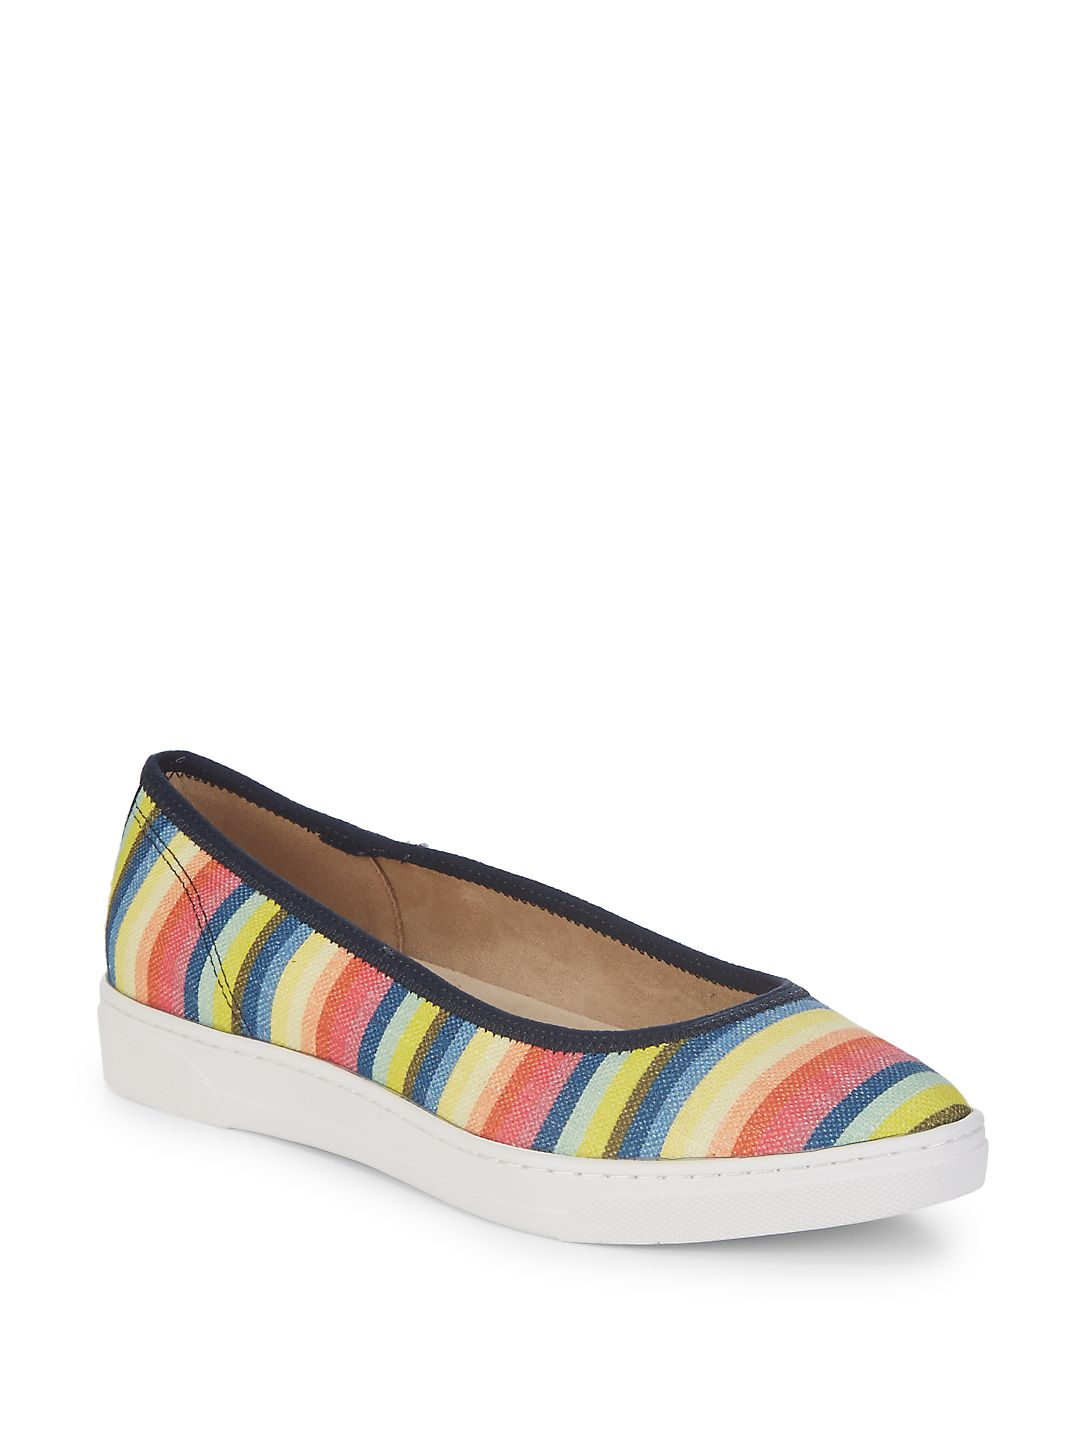 Over The Top Stripe Sneakers